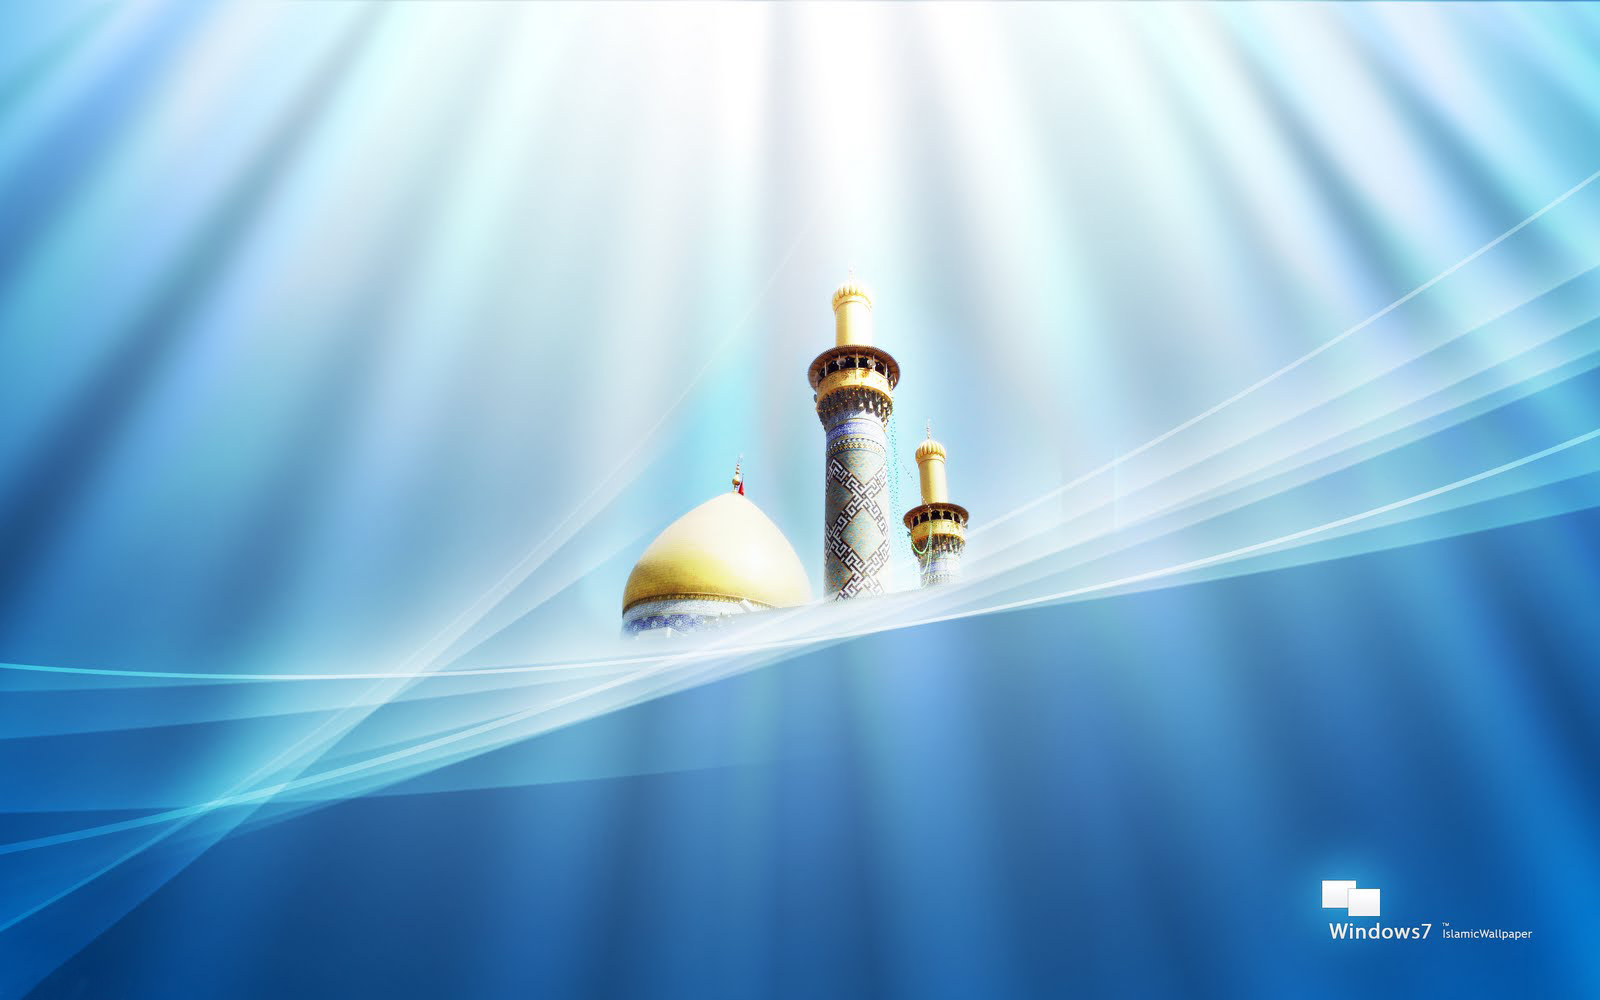 Free Islamic Wallpapers Desktop Background Images Islamcan Allah Wallpapers Hd Wallpaper 1600x1000 Download hd backgrounds tagged as allah. adorable wallpapers